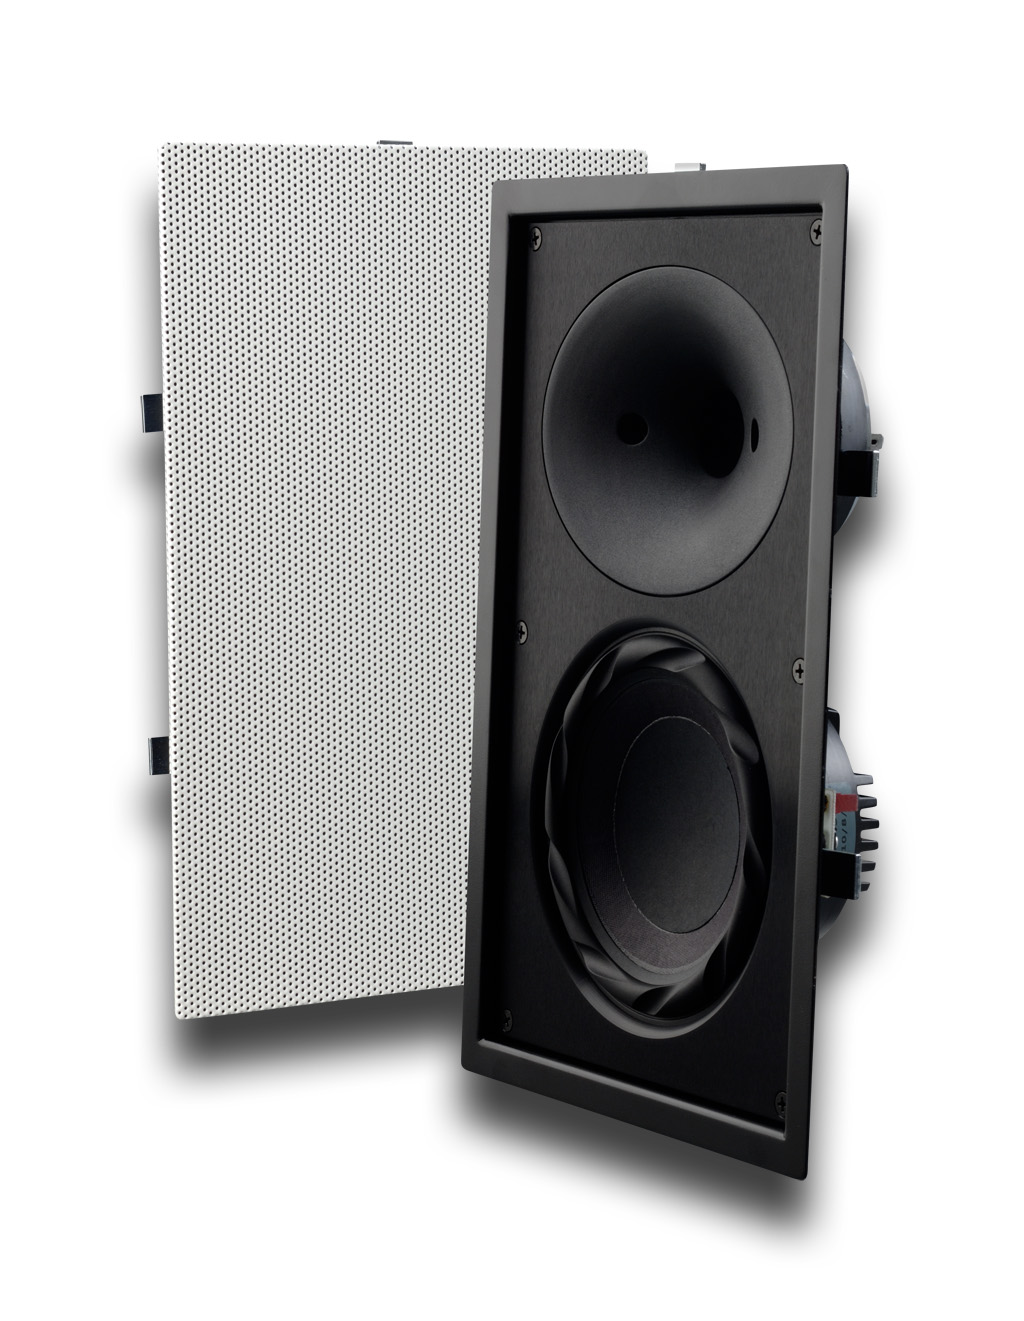 amplifier-subwoofer-speakers